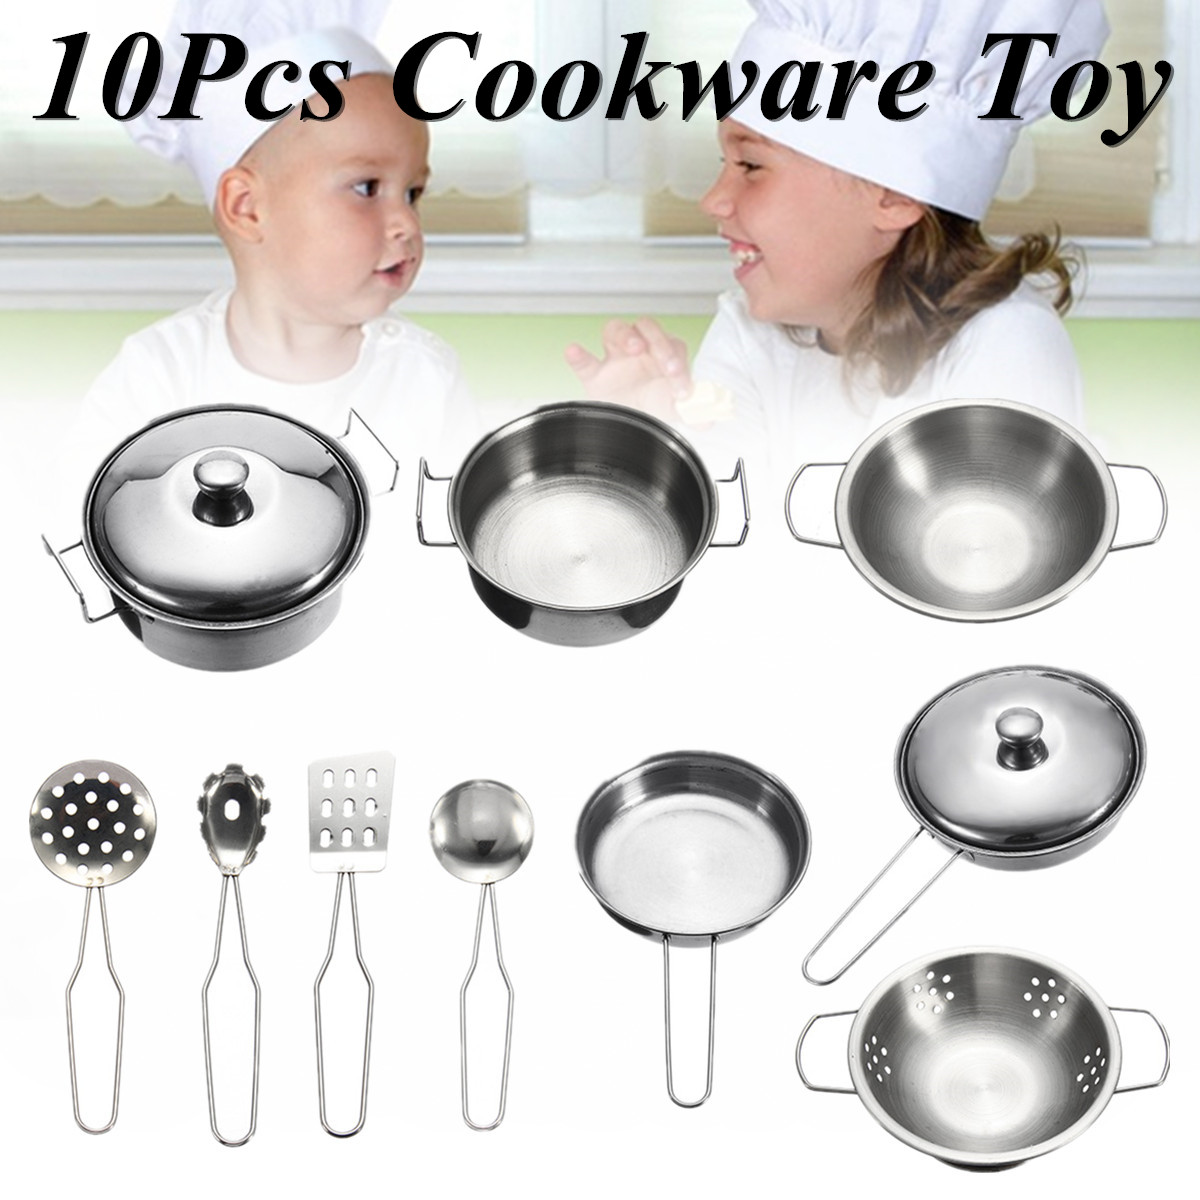 10pcs kids Cookware Playset Pretend & Play Set Toys Stainless Steel For Children Play House Simulation Kitchen Utensils Earlier Educational - Pots&Pans,Soup Spoon,Colander,Spatula